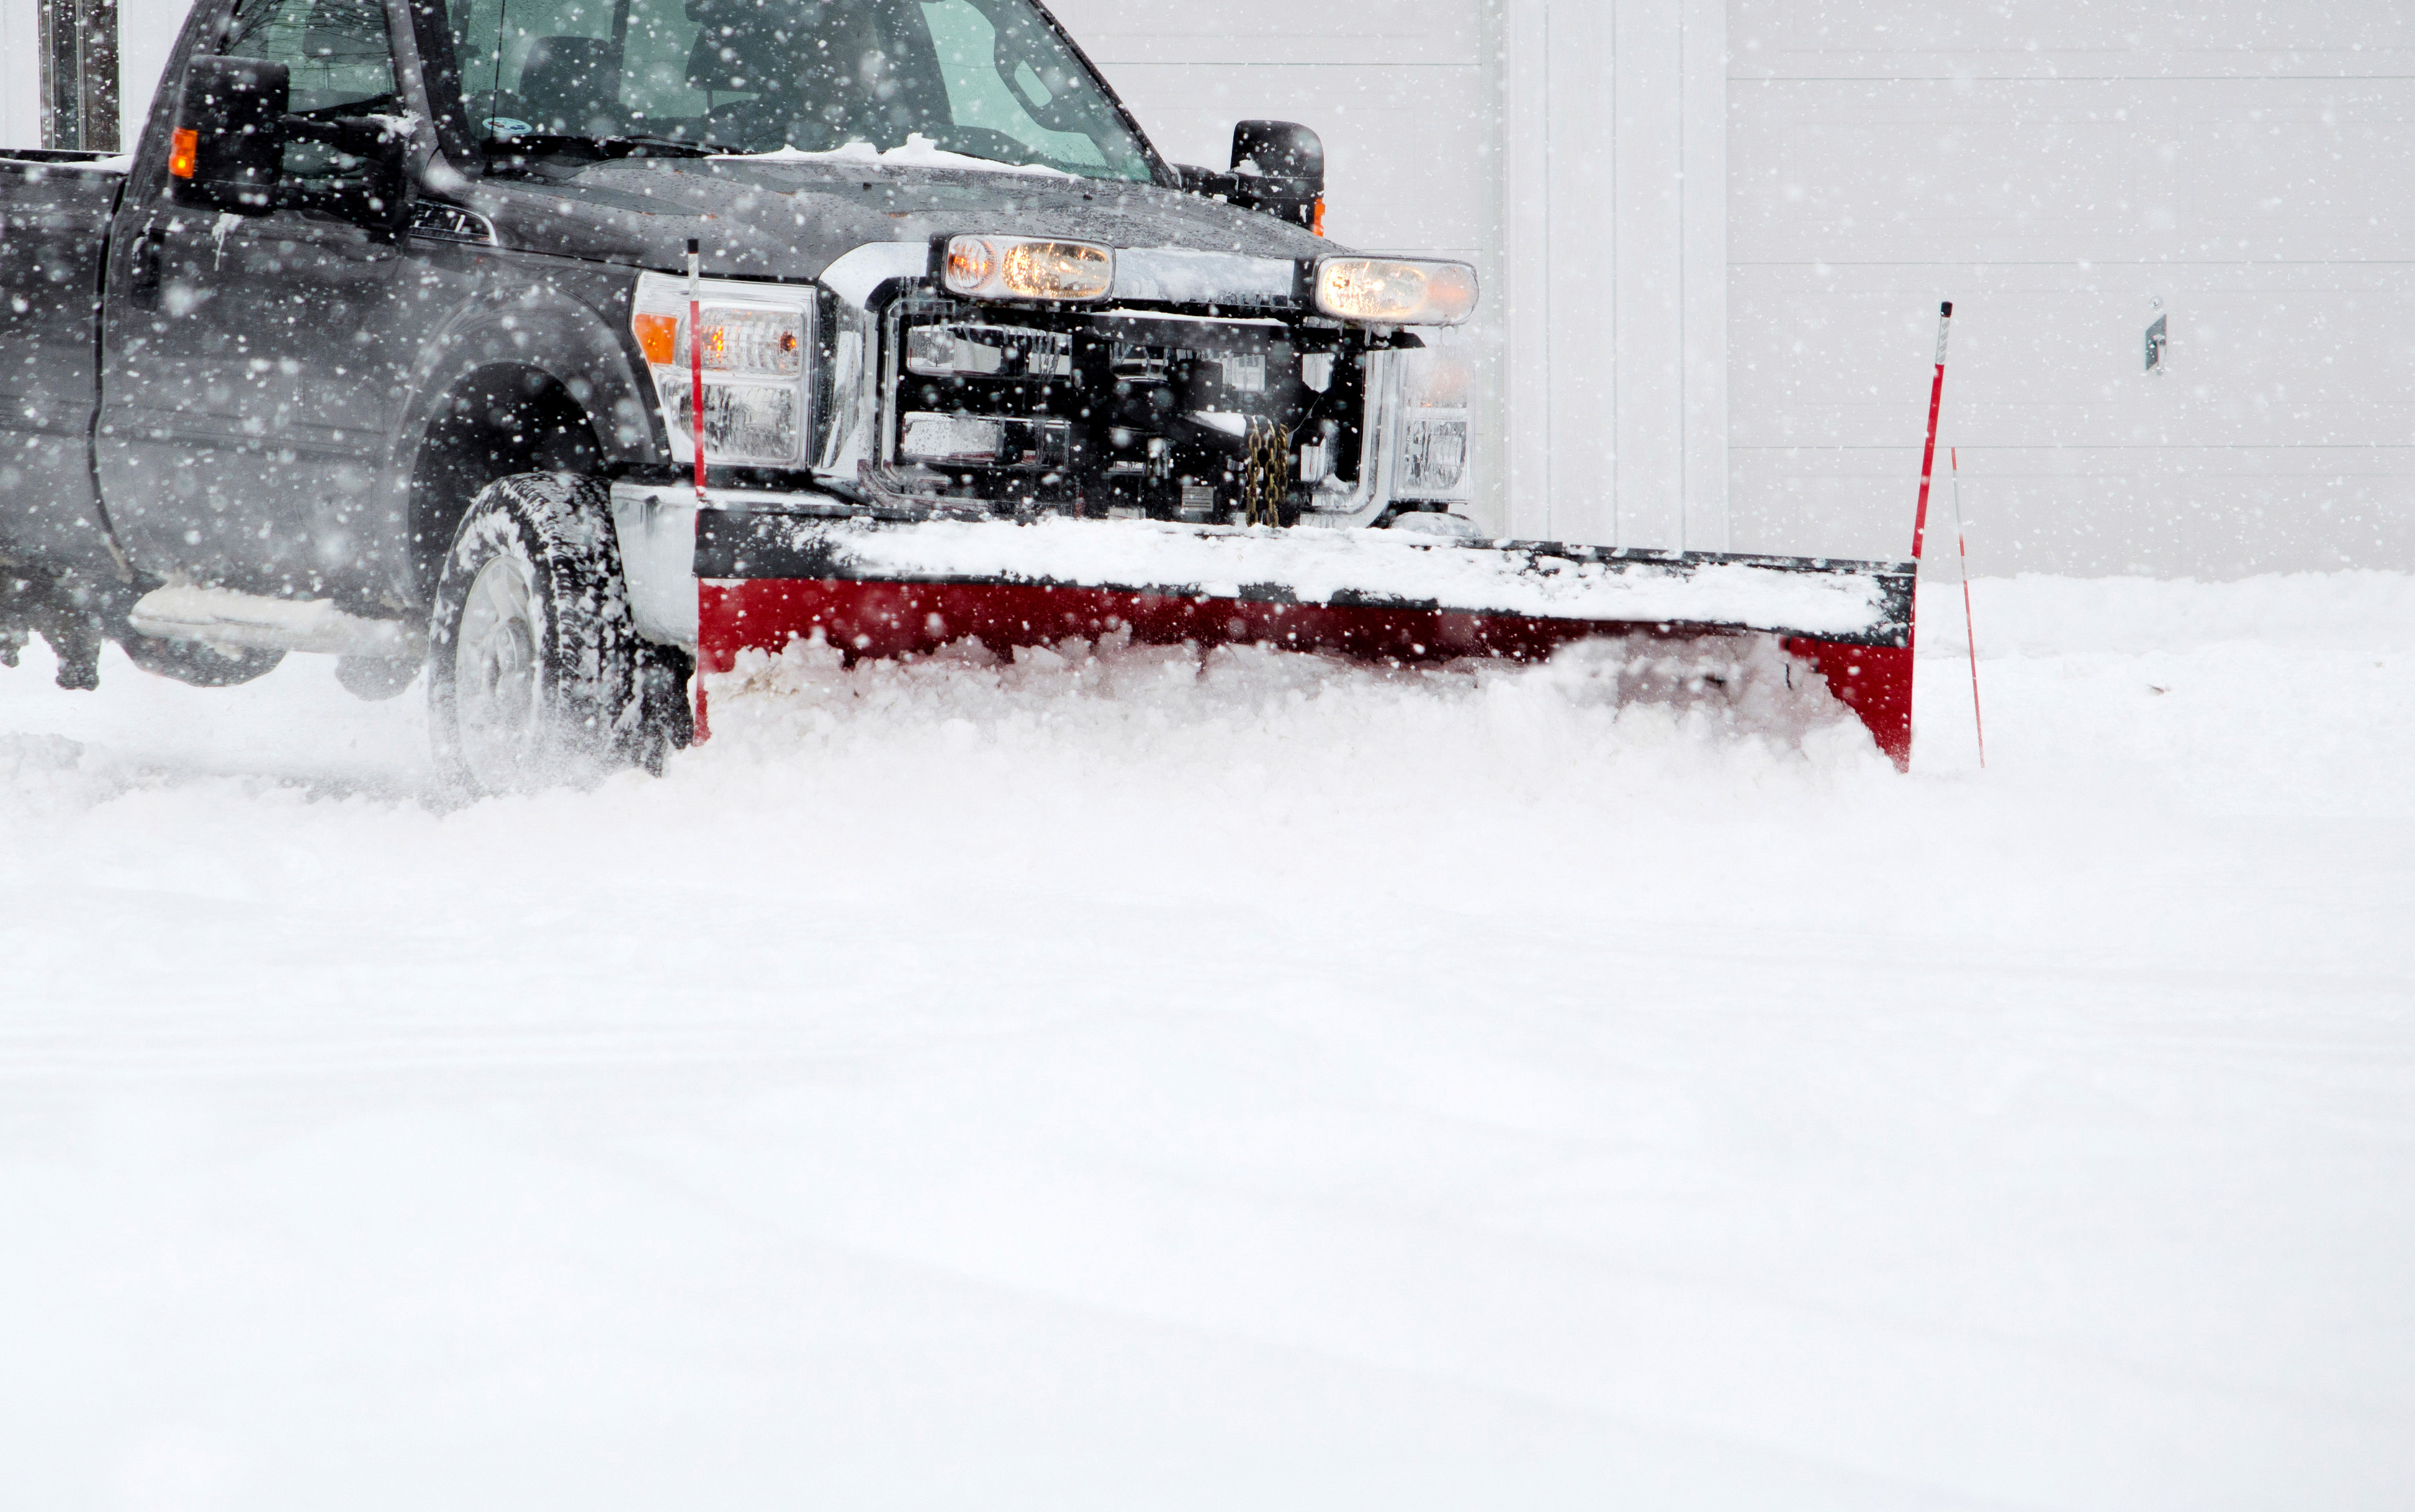 Commercial snow removal services loudoun and fairfax county